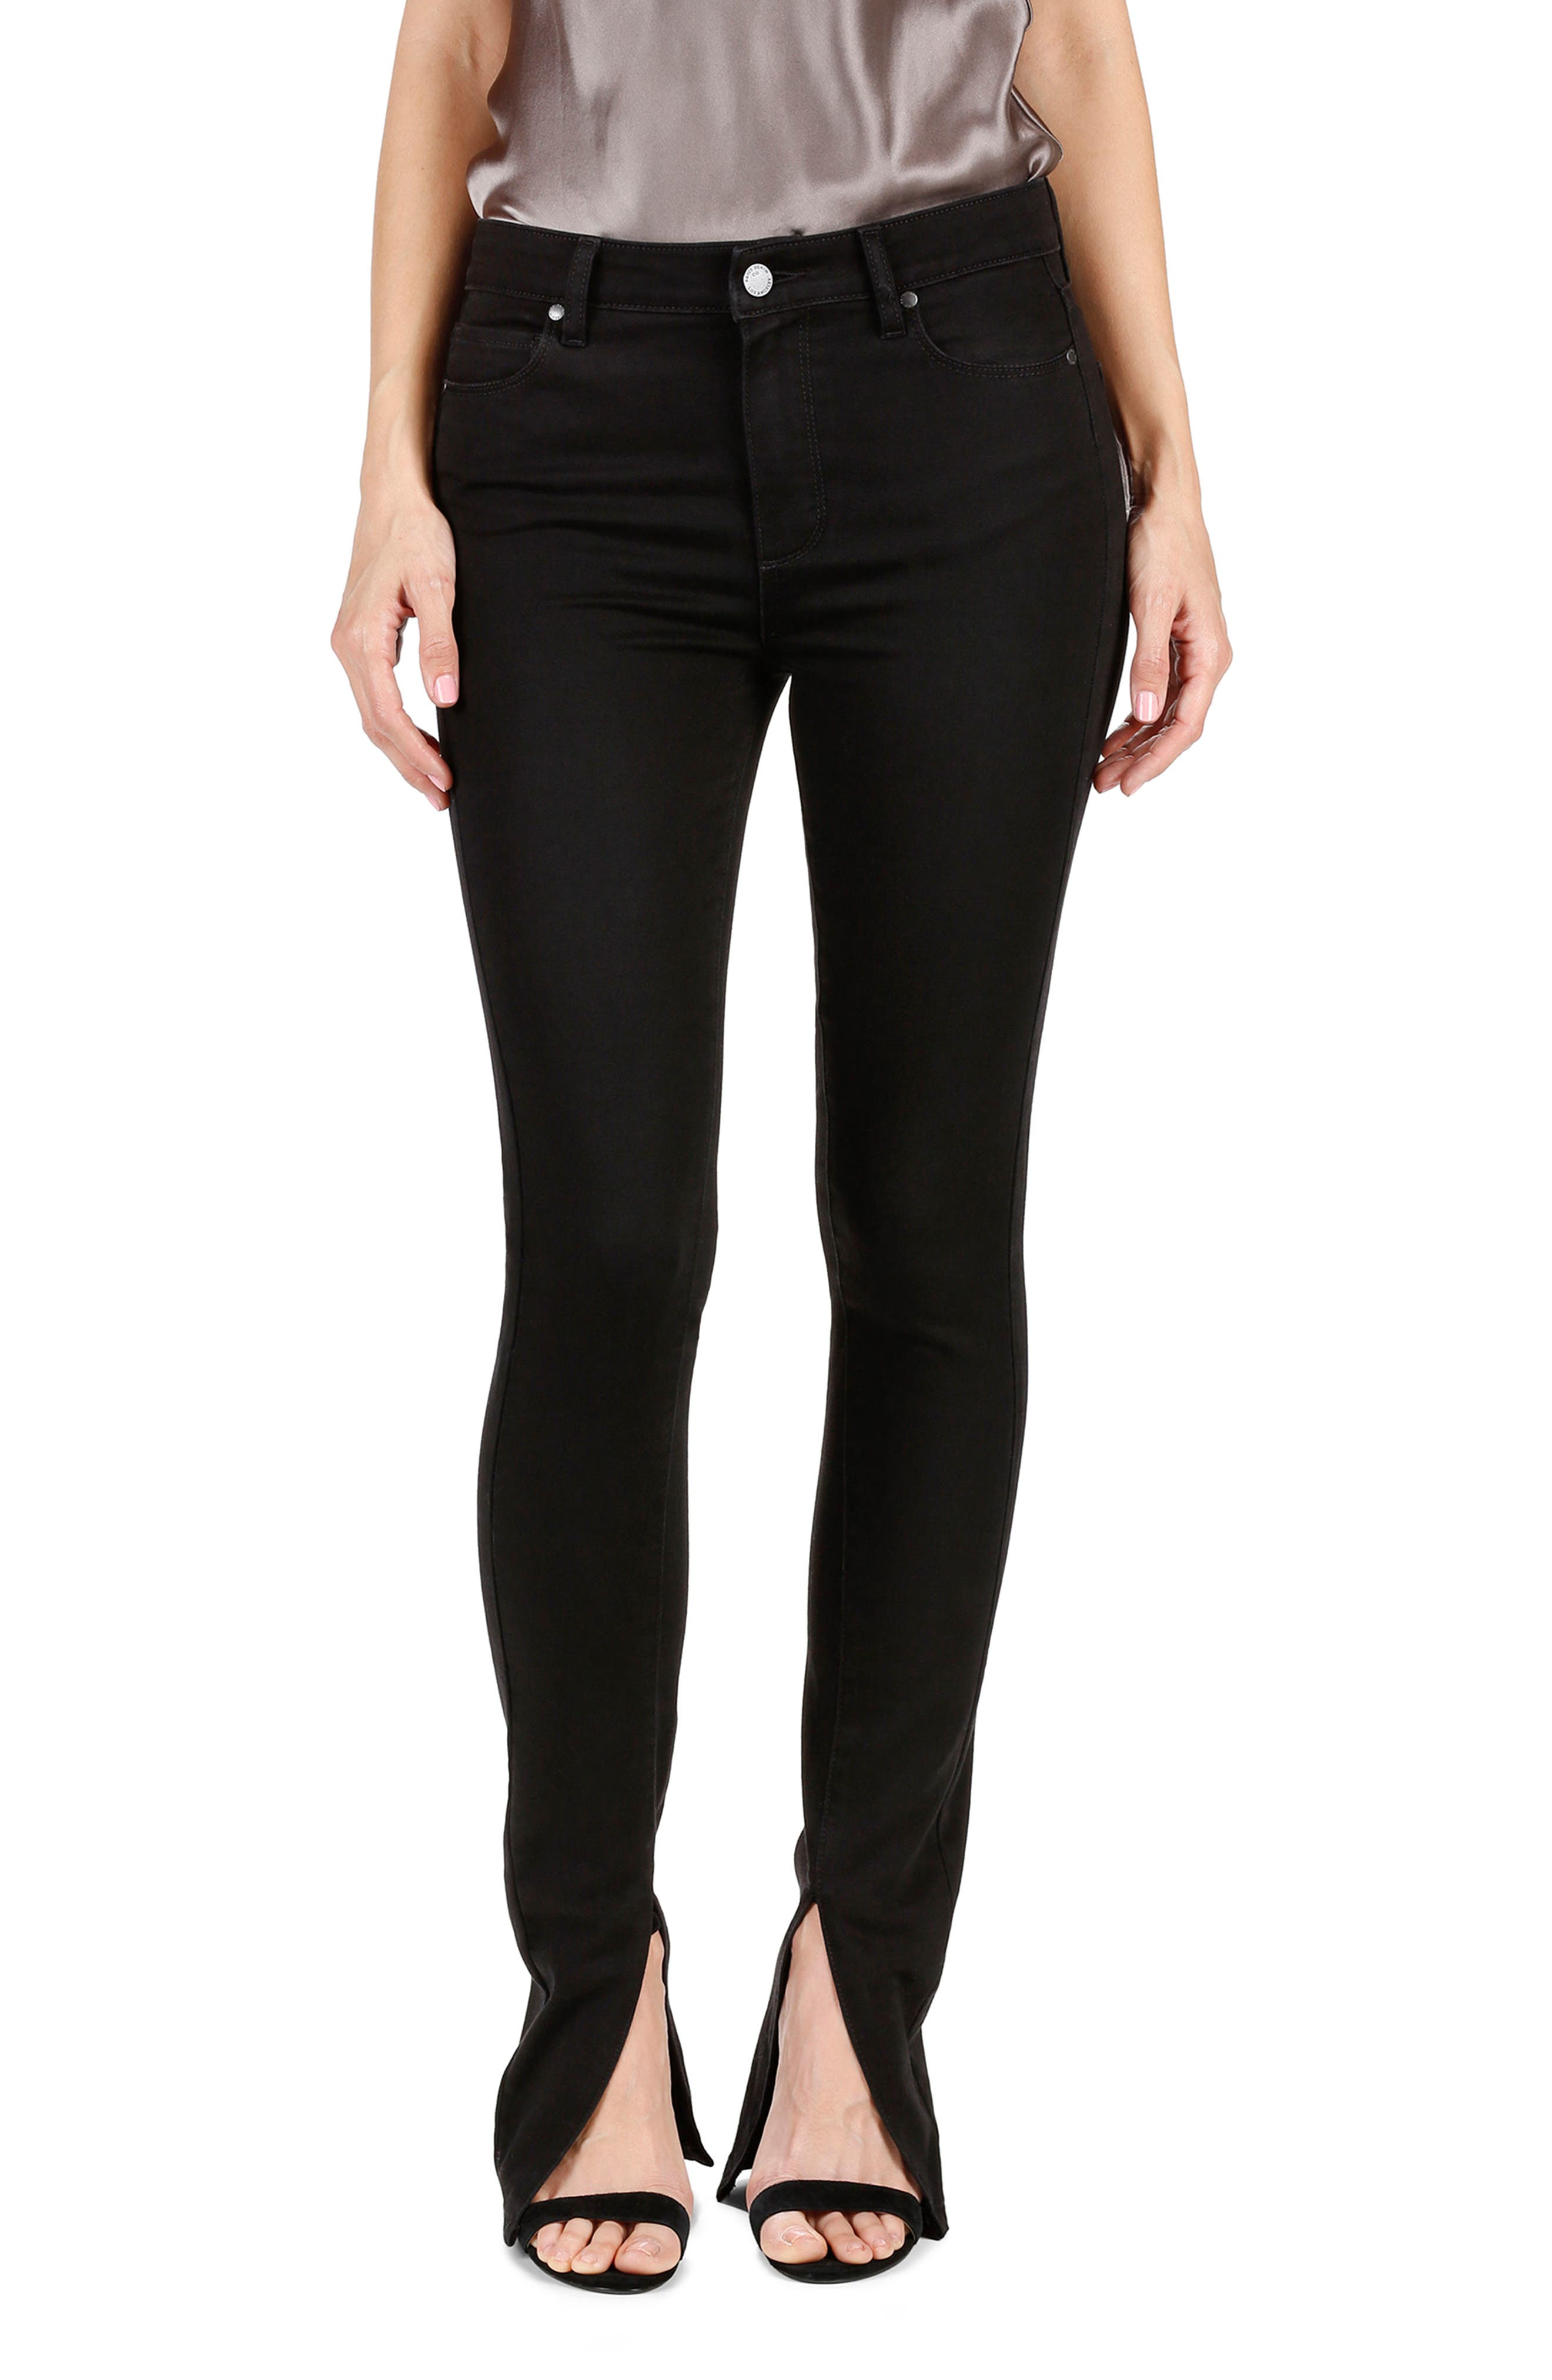 Rosie HW x PAIGE Constance Skinny Jeans,                             Main thumbnail 1, color,                             001